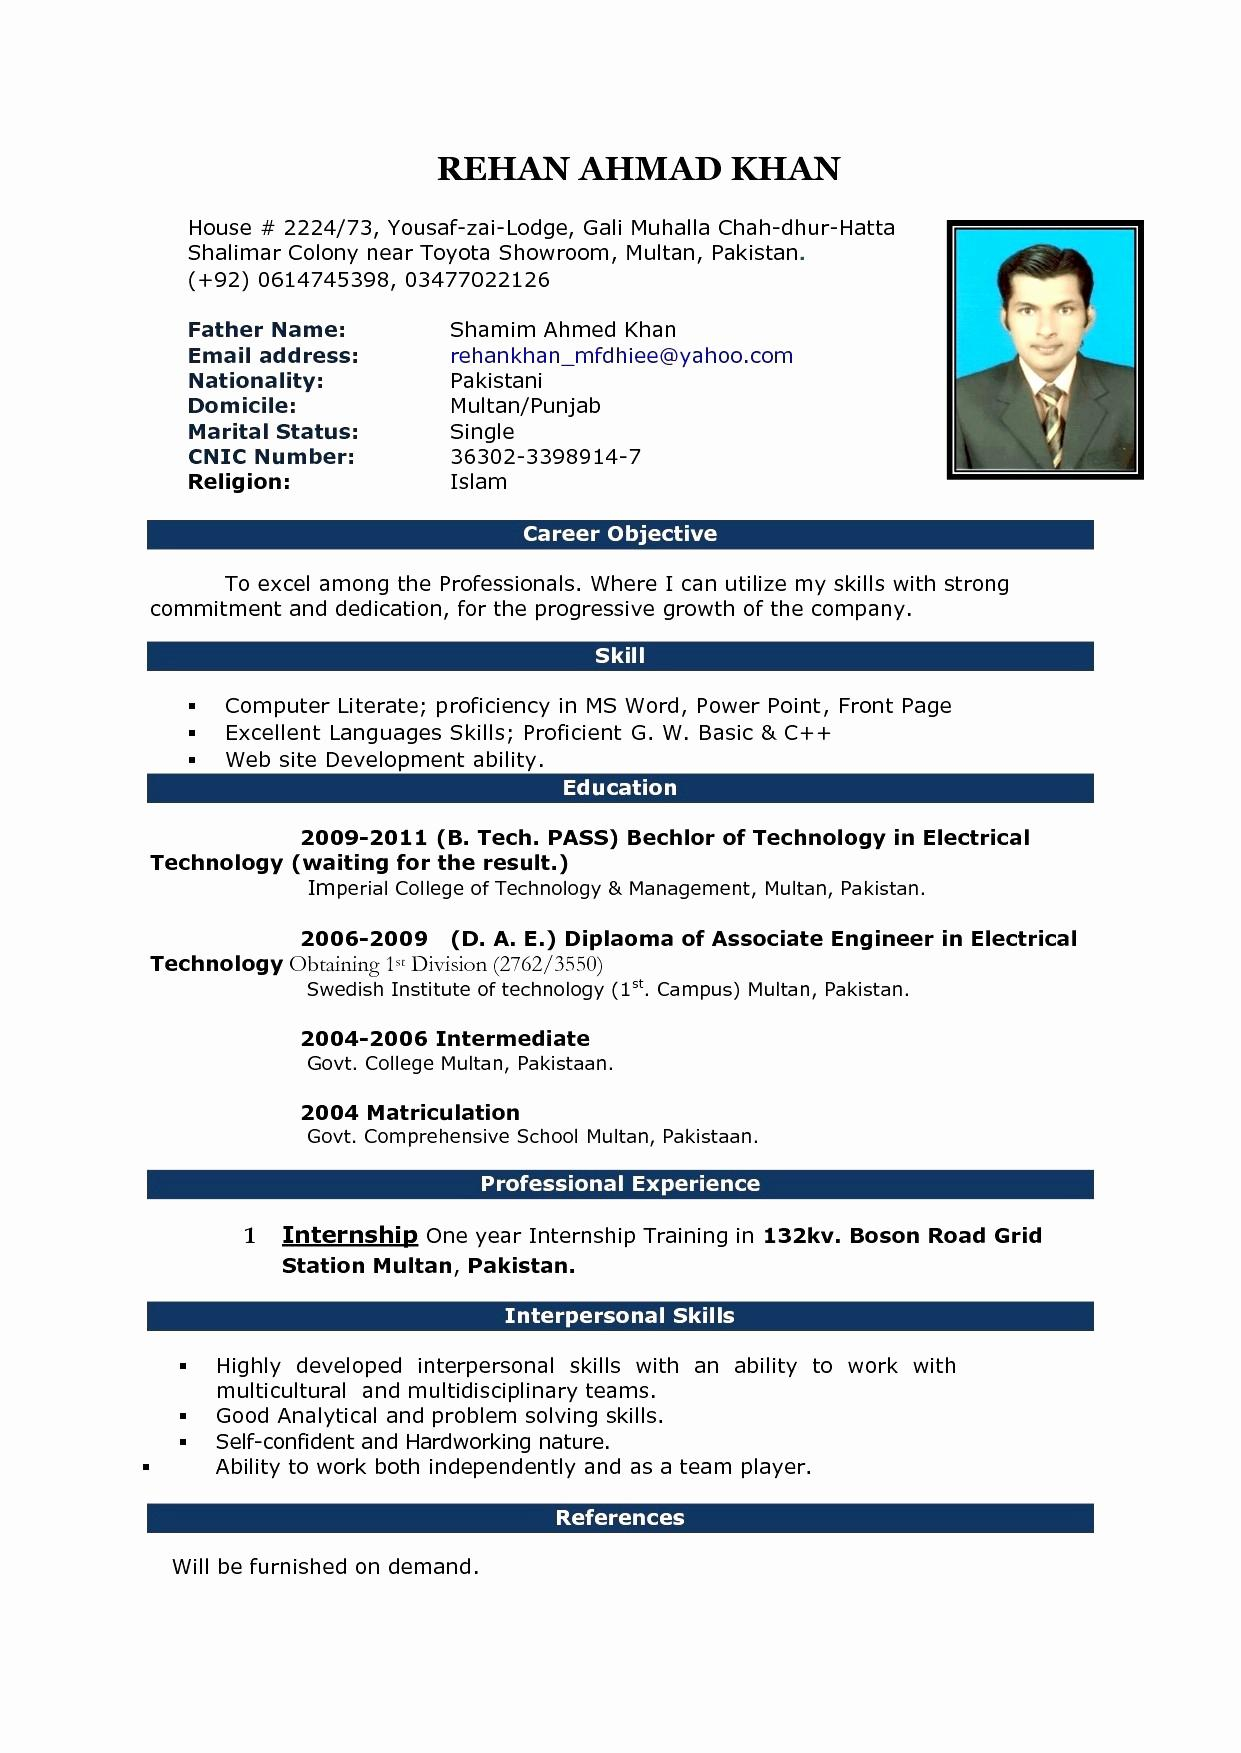 Unique Resume Templates - Web Designer Resume Word format Inspirational Best Pr Resume